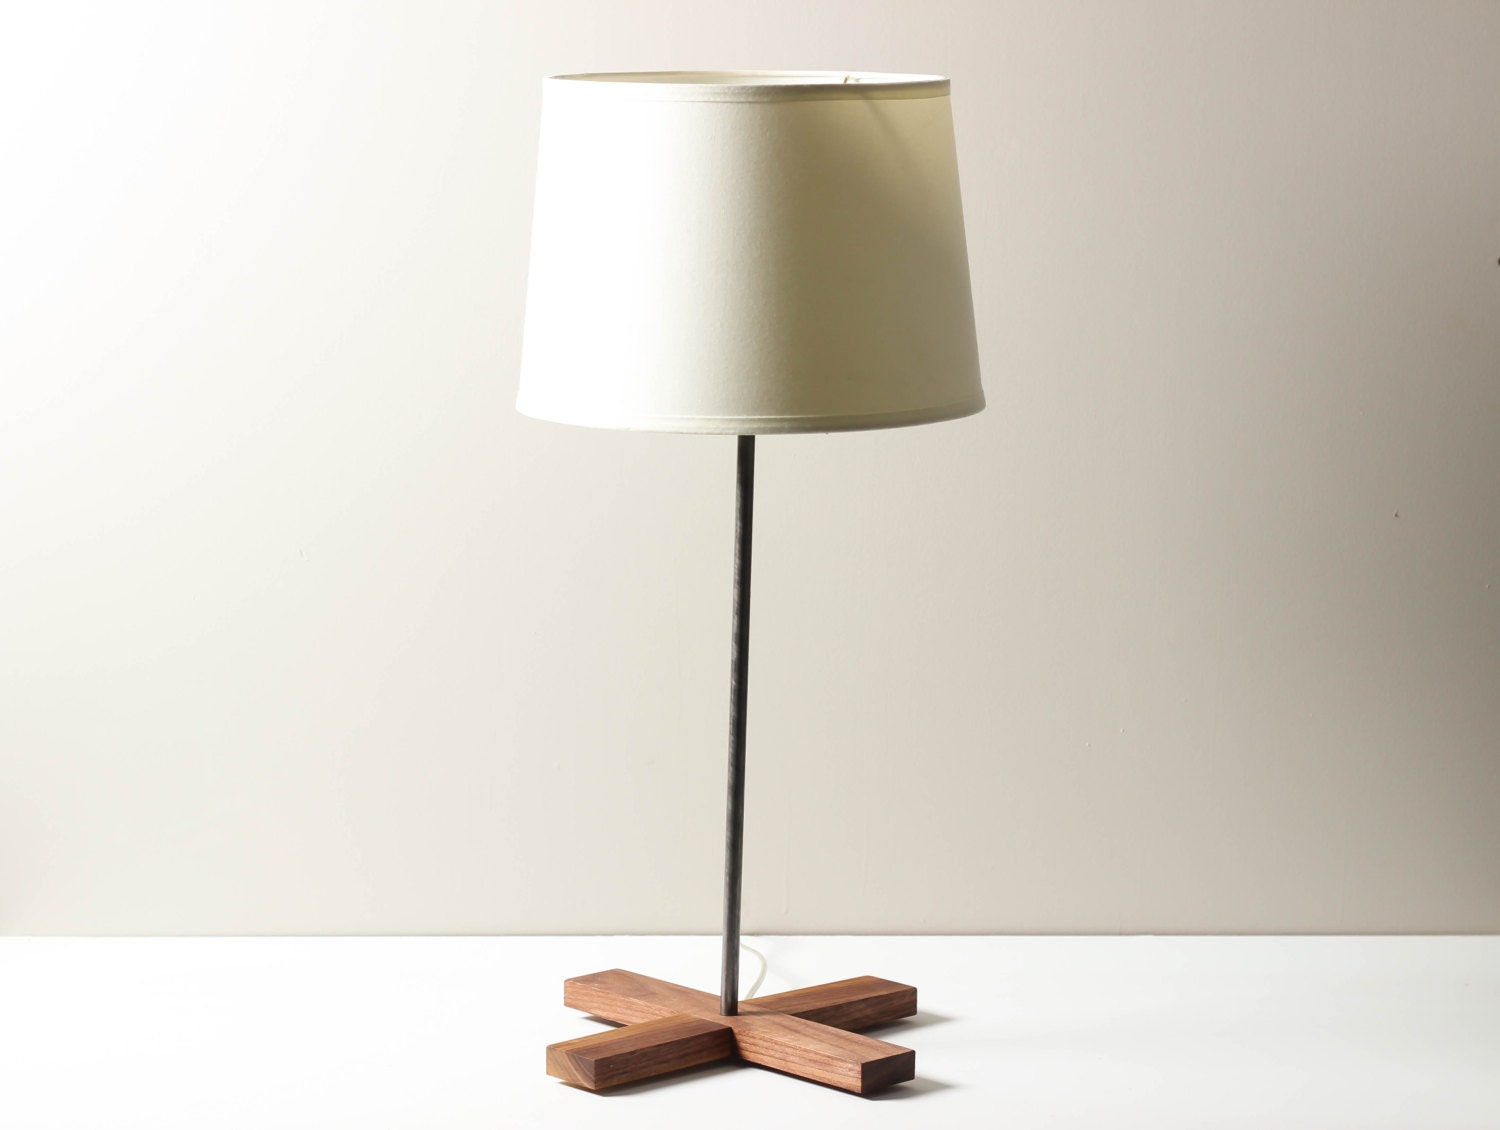 X Base Lamp- Walnut Base, Skinny Modern Table Lamp, Table Lamp, Modern Lighting, Living Room Lamp - WorleysLighting